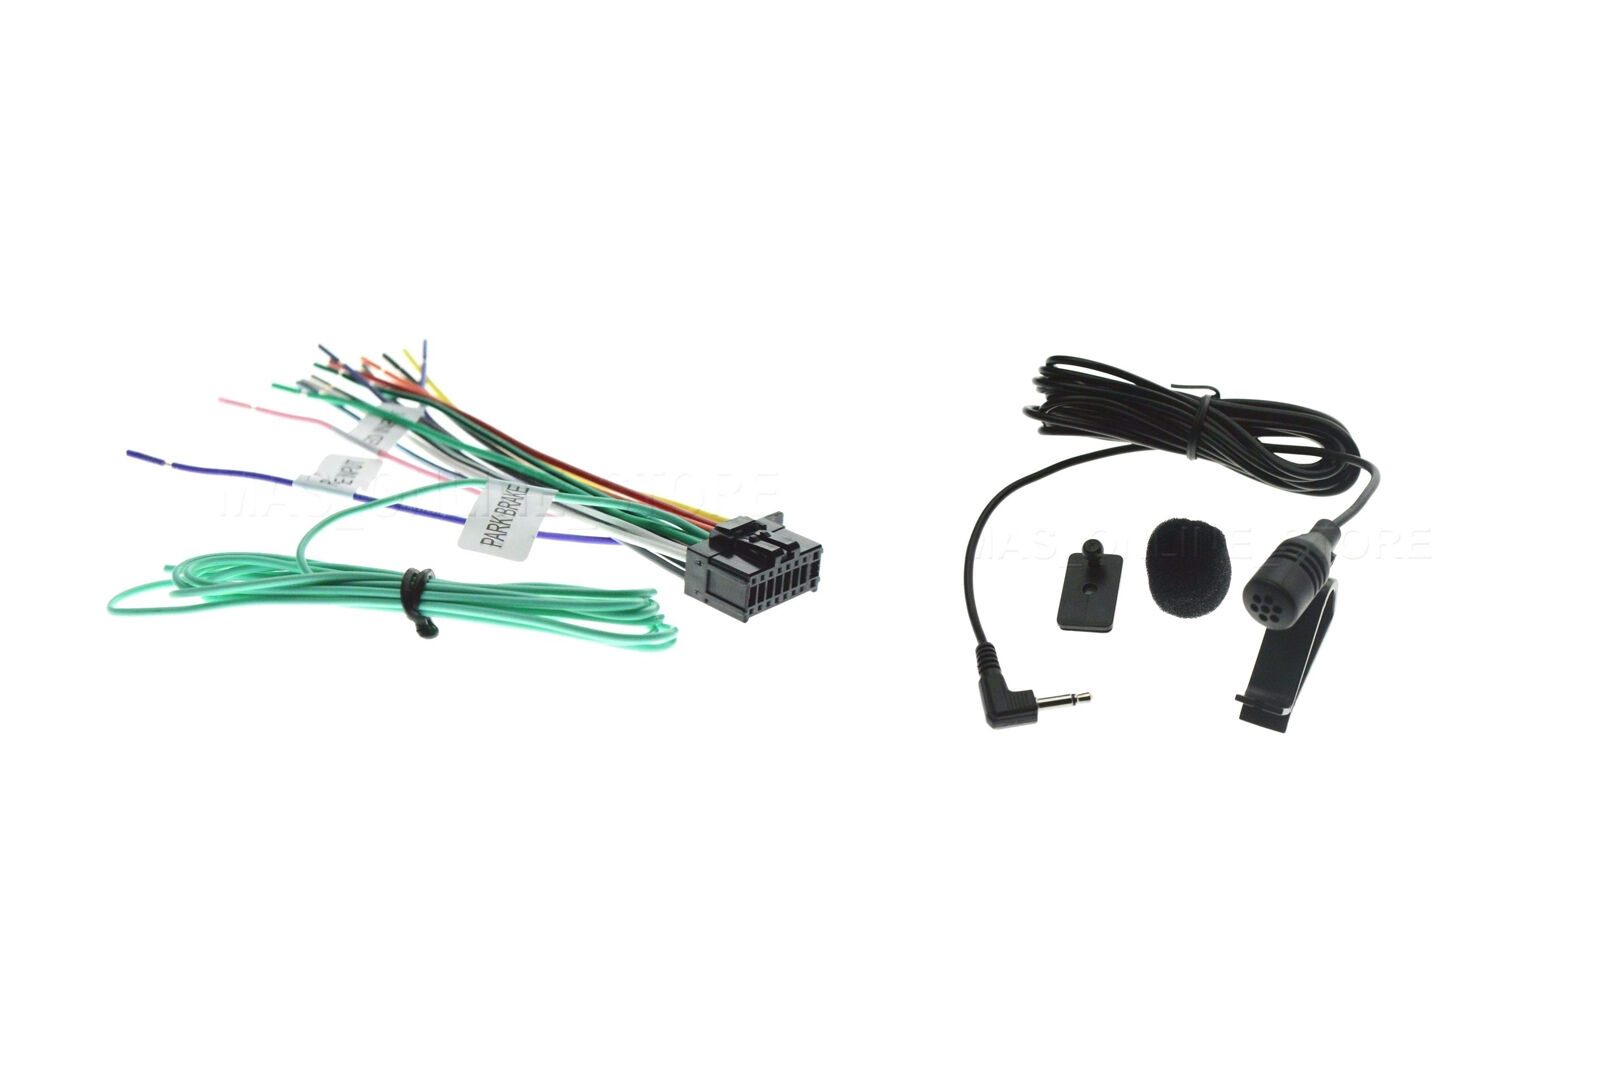 s l1600 16pin wire harness & microphone for pioneer avic 8200nex Wire Harness Assembly at pacquiaovsvargaslive.co